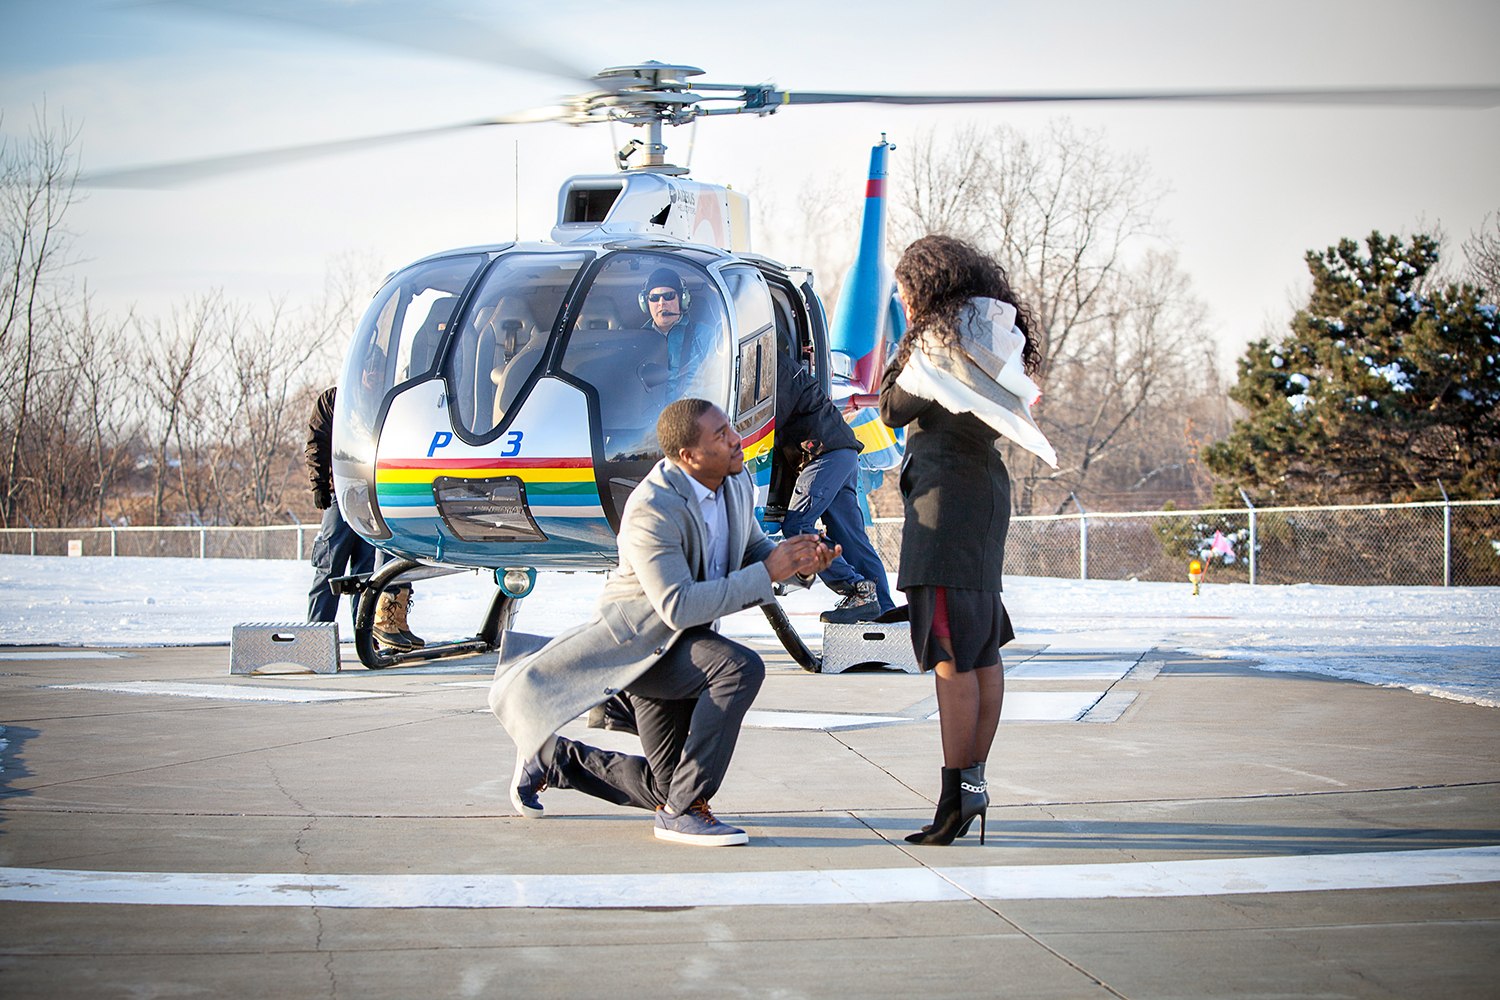 Surprise engagement at the Helicopter pad in Niagara Falls